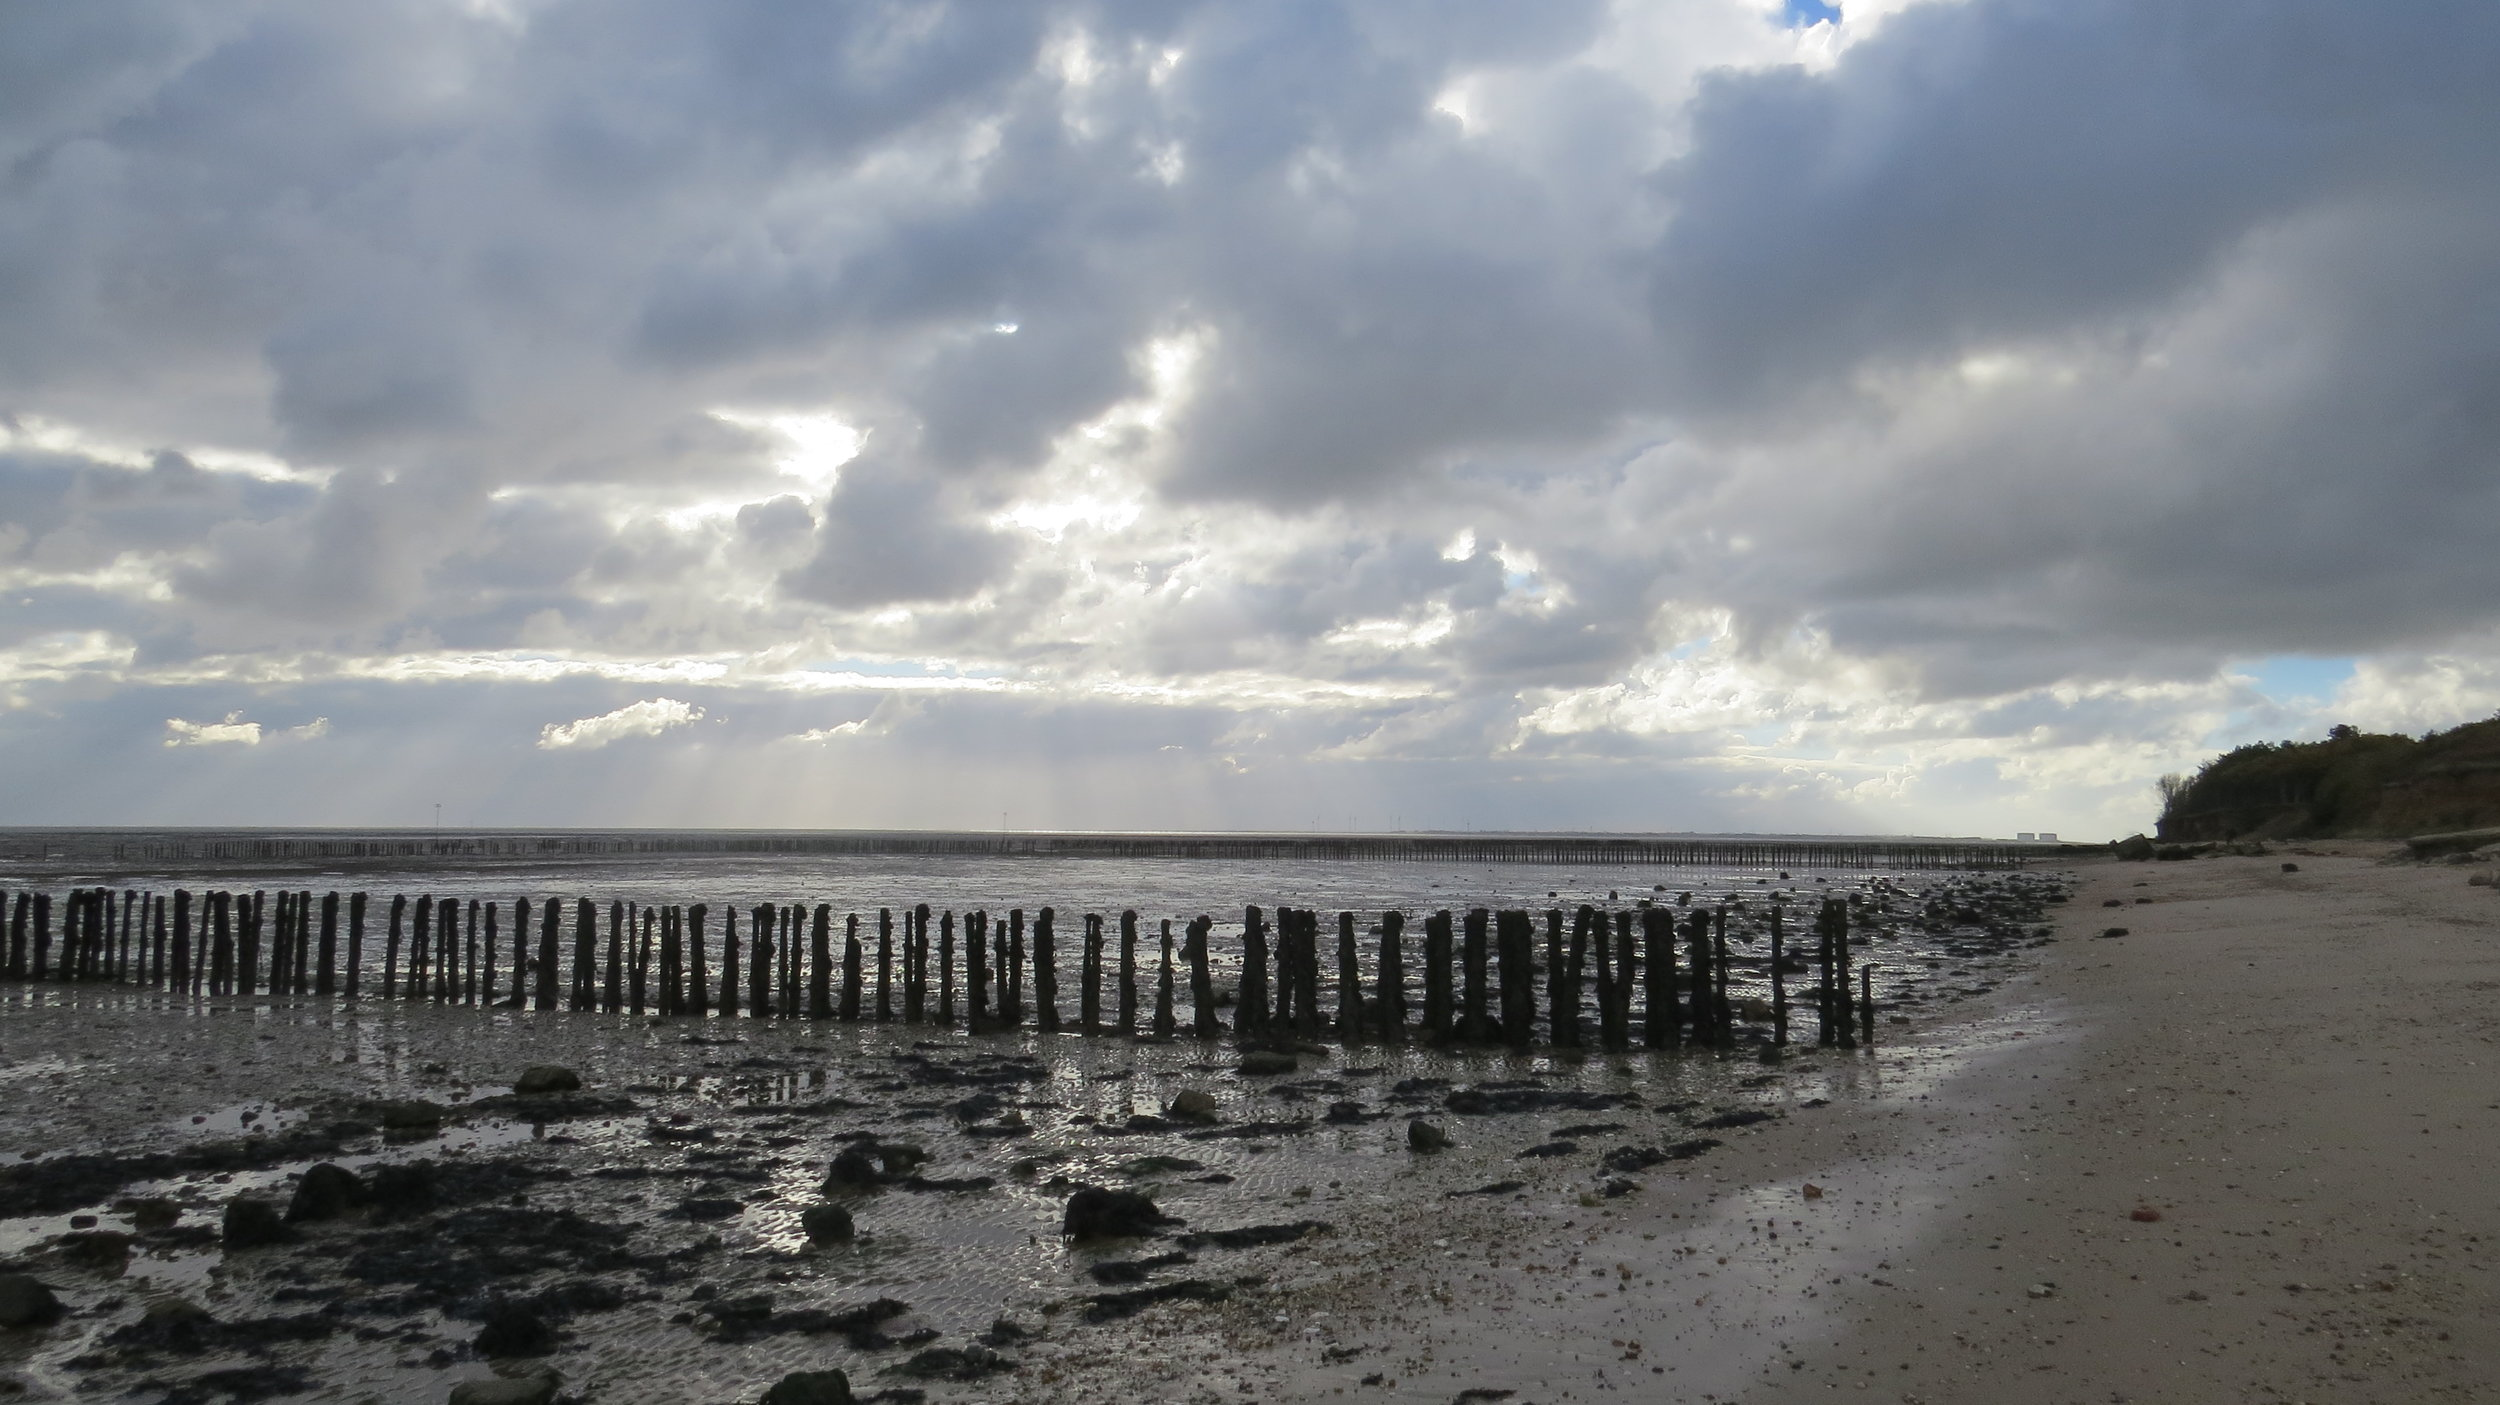 Sea Defences or Old Oyster Beds?